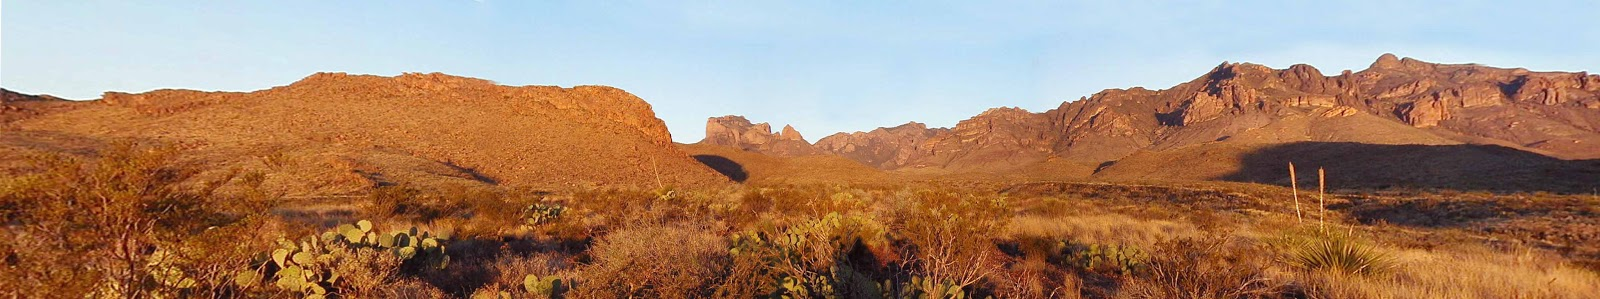 Big Pine Canyon, Big Bend National Park - Source: National Park Service